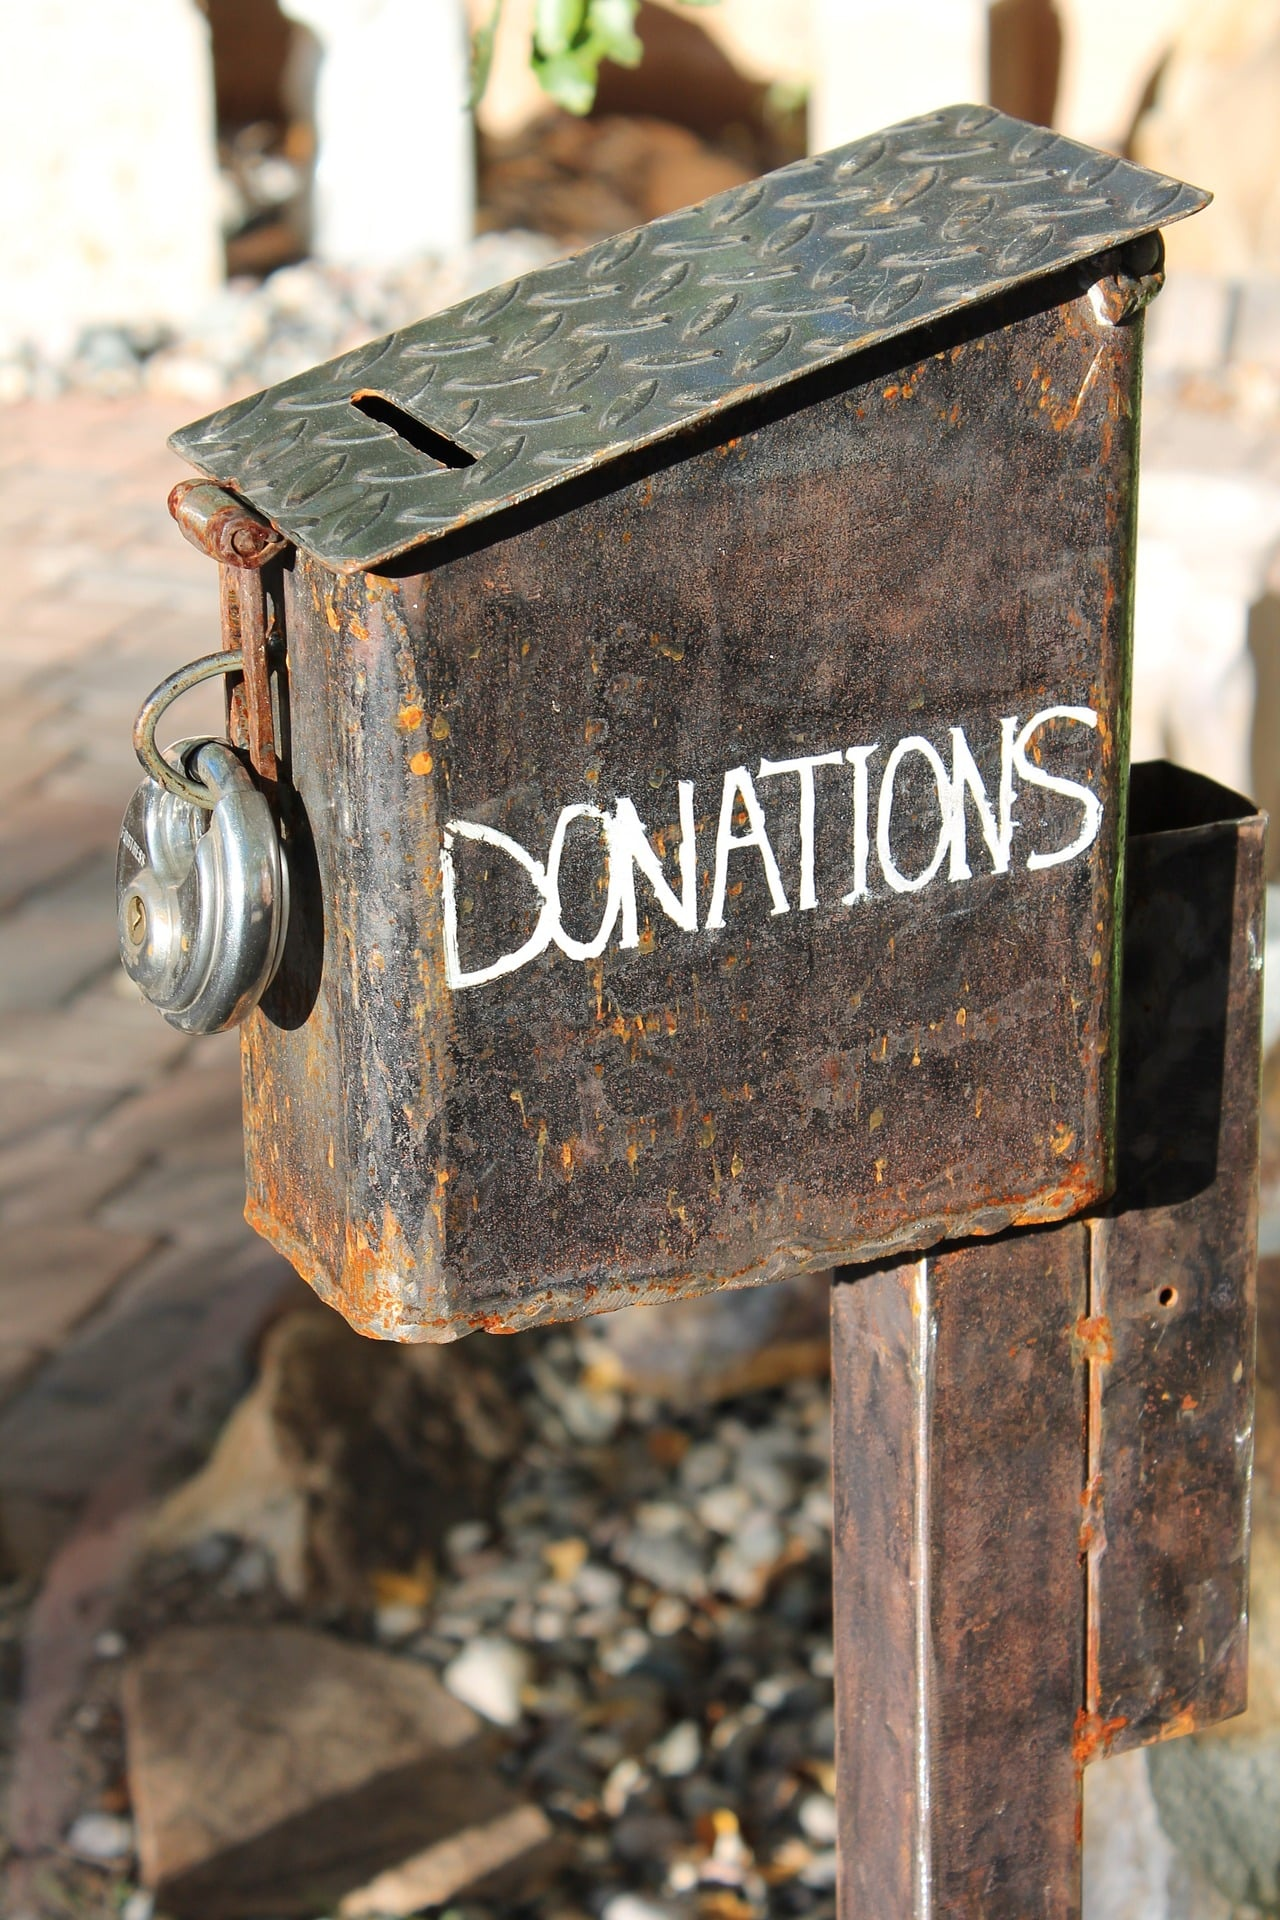 When can you claim a tax deduction for a gift or donation?